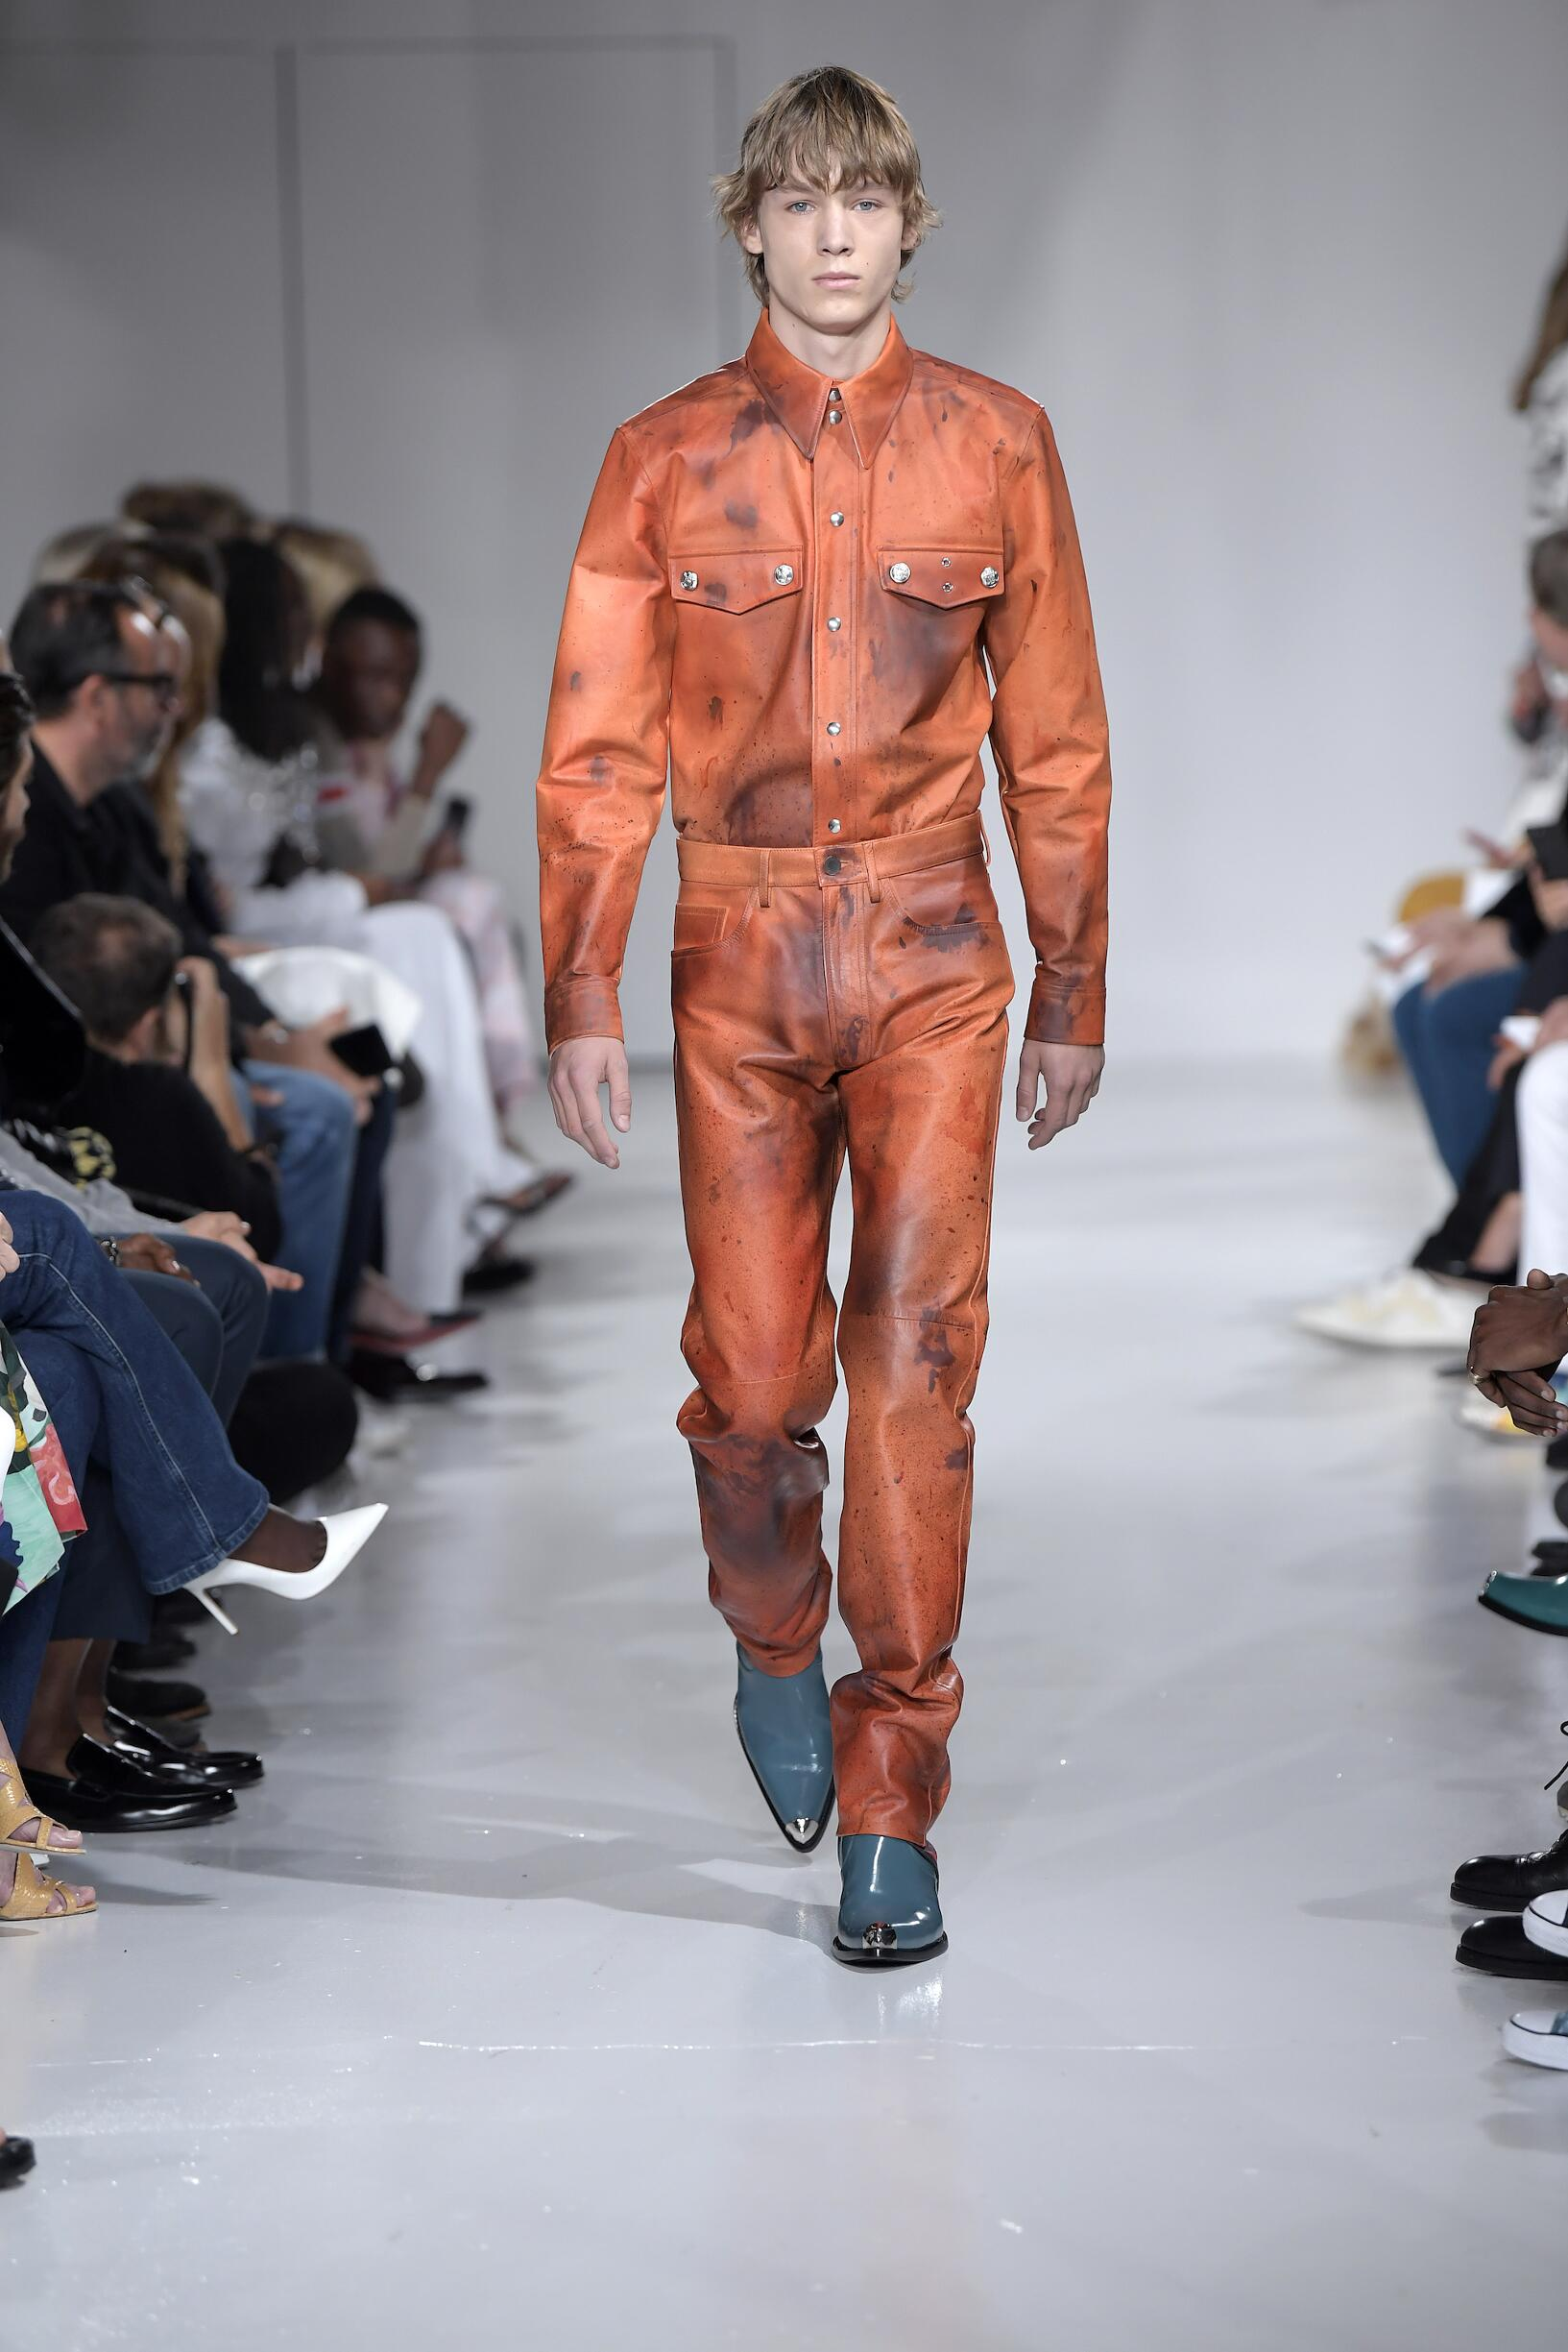 Catwalk Calvin Klein 205W39NYC Summer 2018